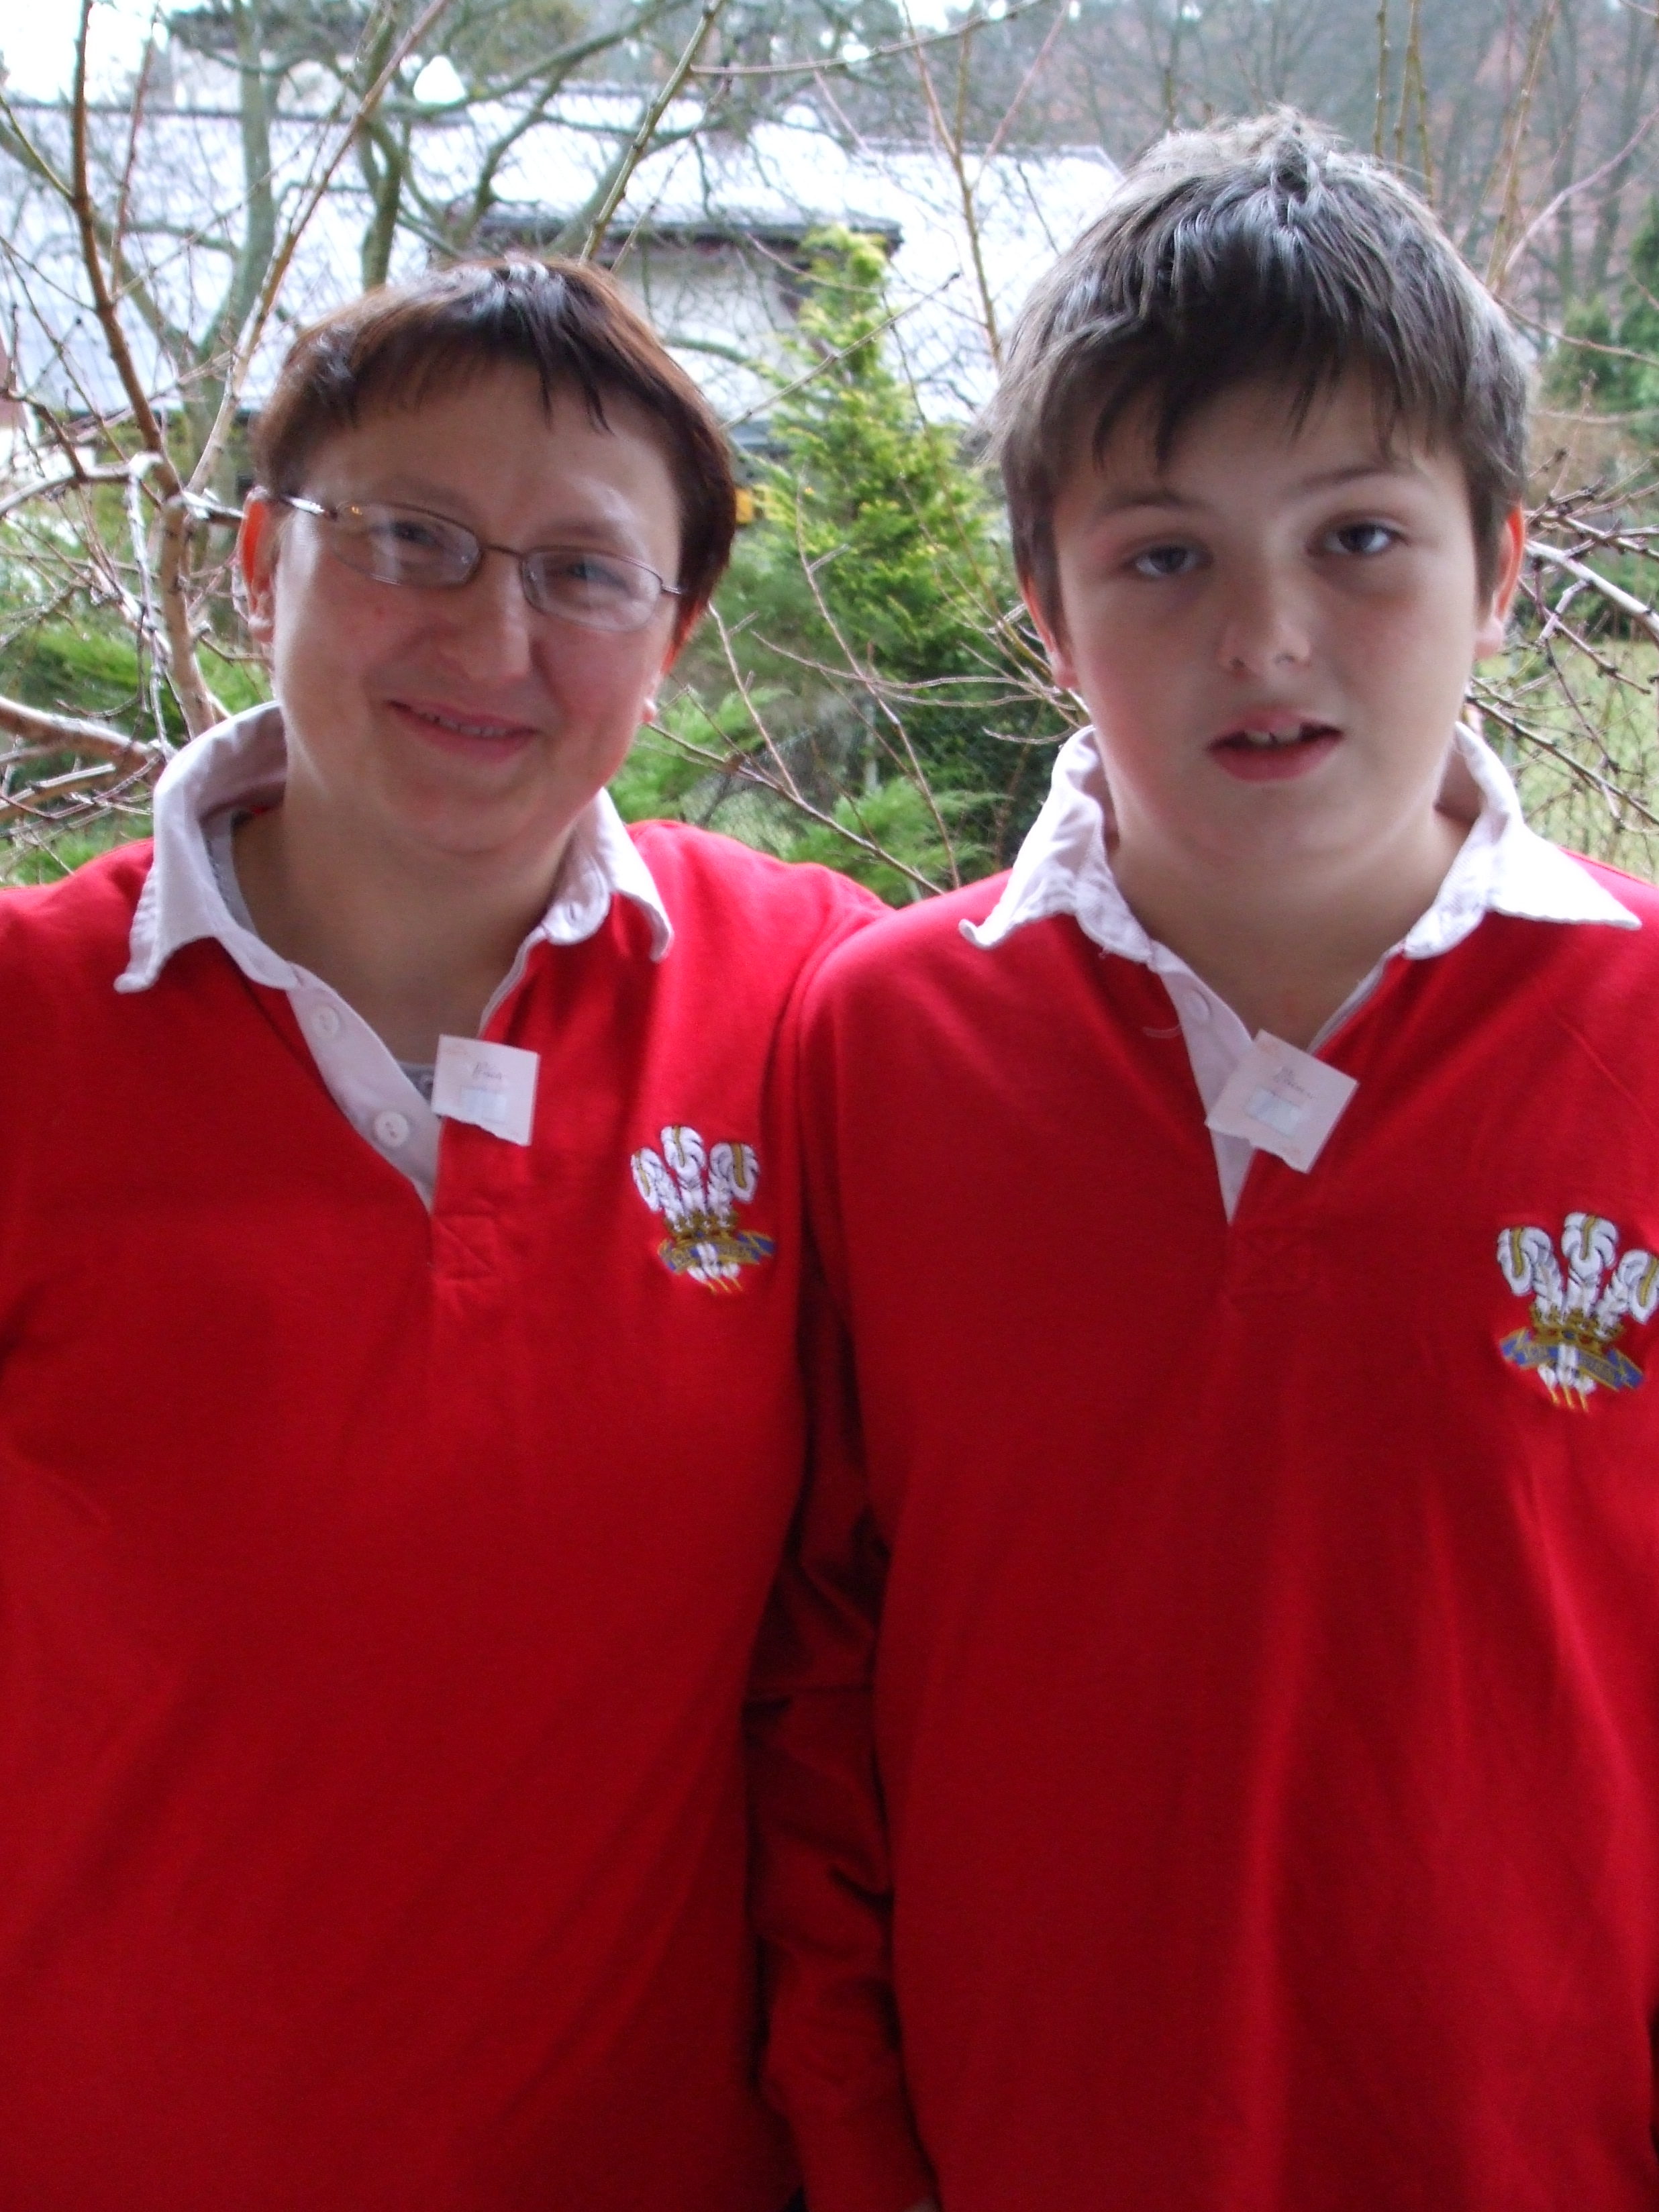 Elka+Misiek disguised as Welsh Rugby Fans